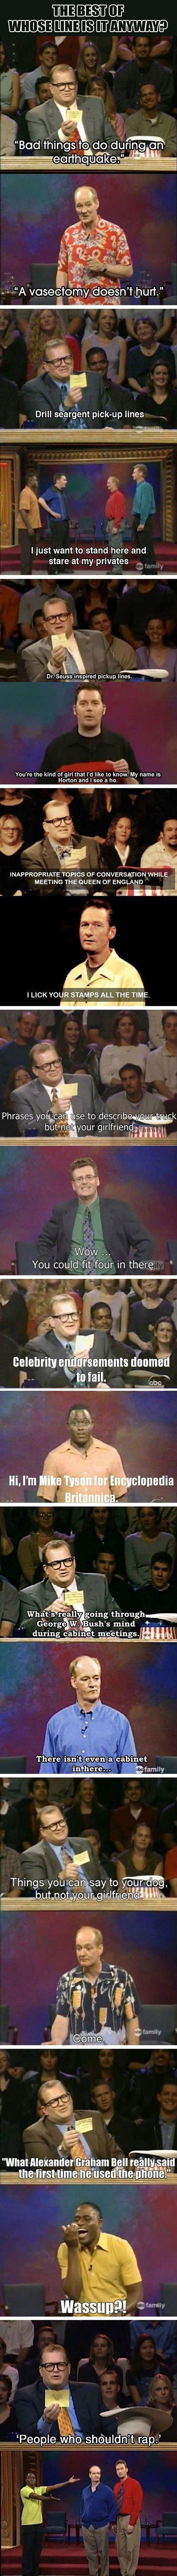 """The Best Of, """"Whose Line Is It Anyway?"""" – 20 Pics"""